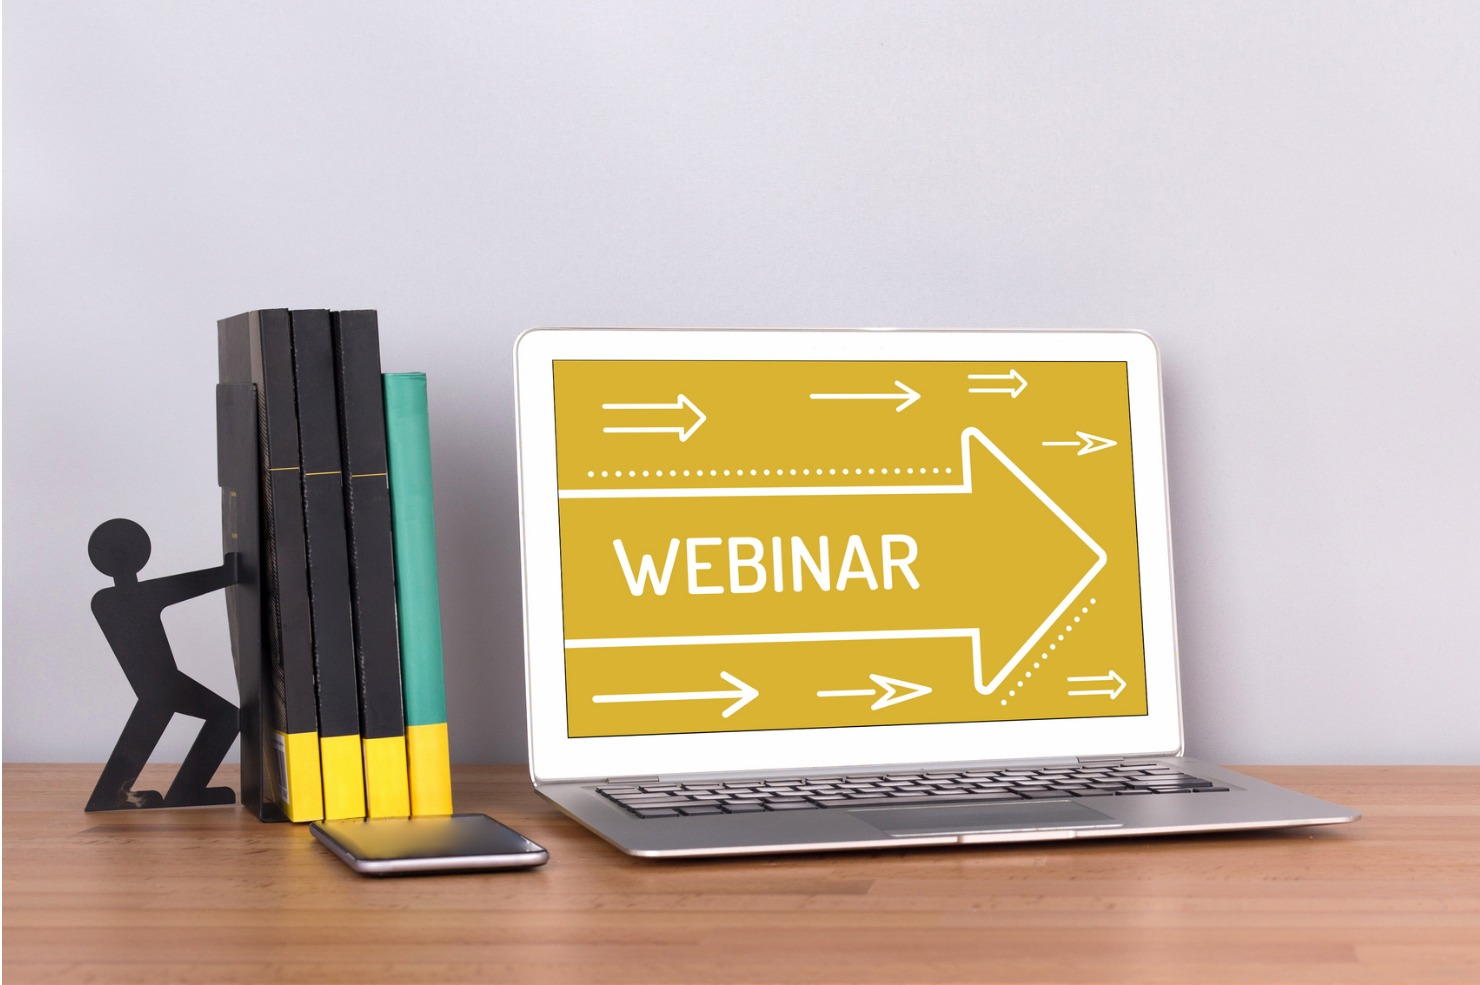 Take part in one or our educational webinar